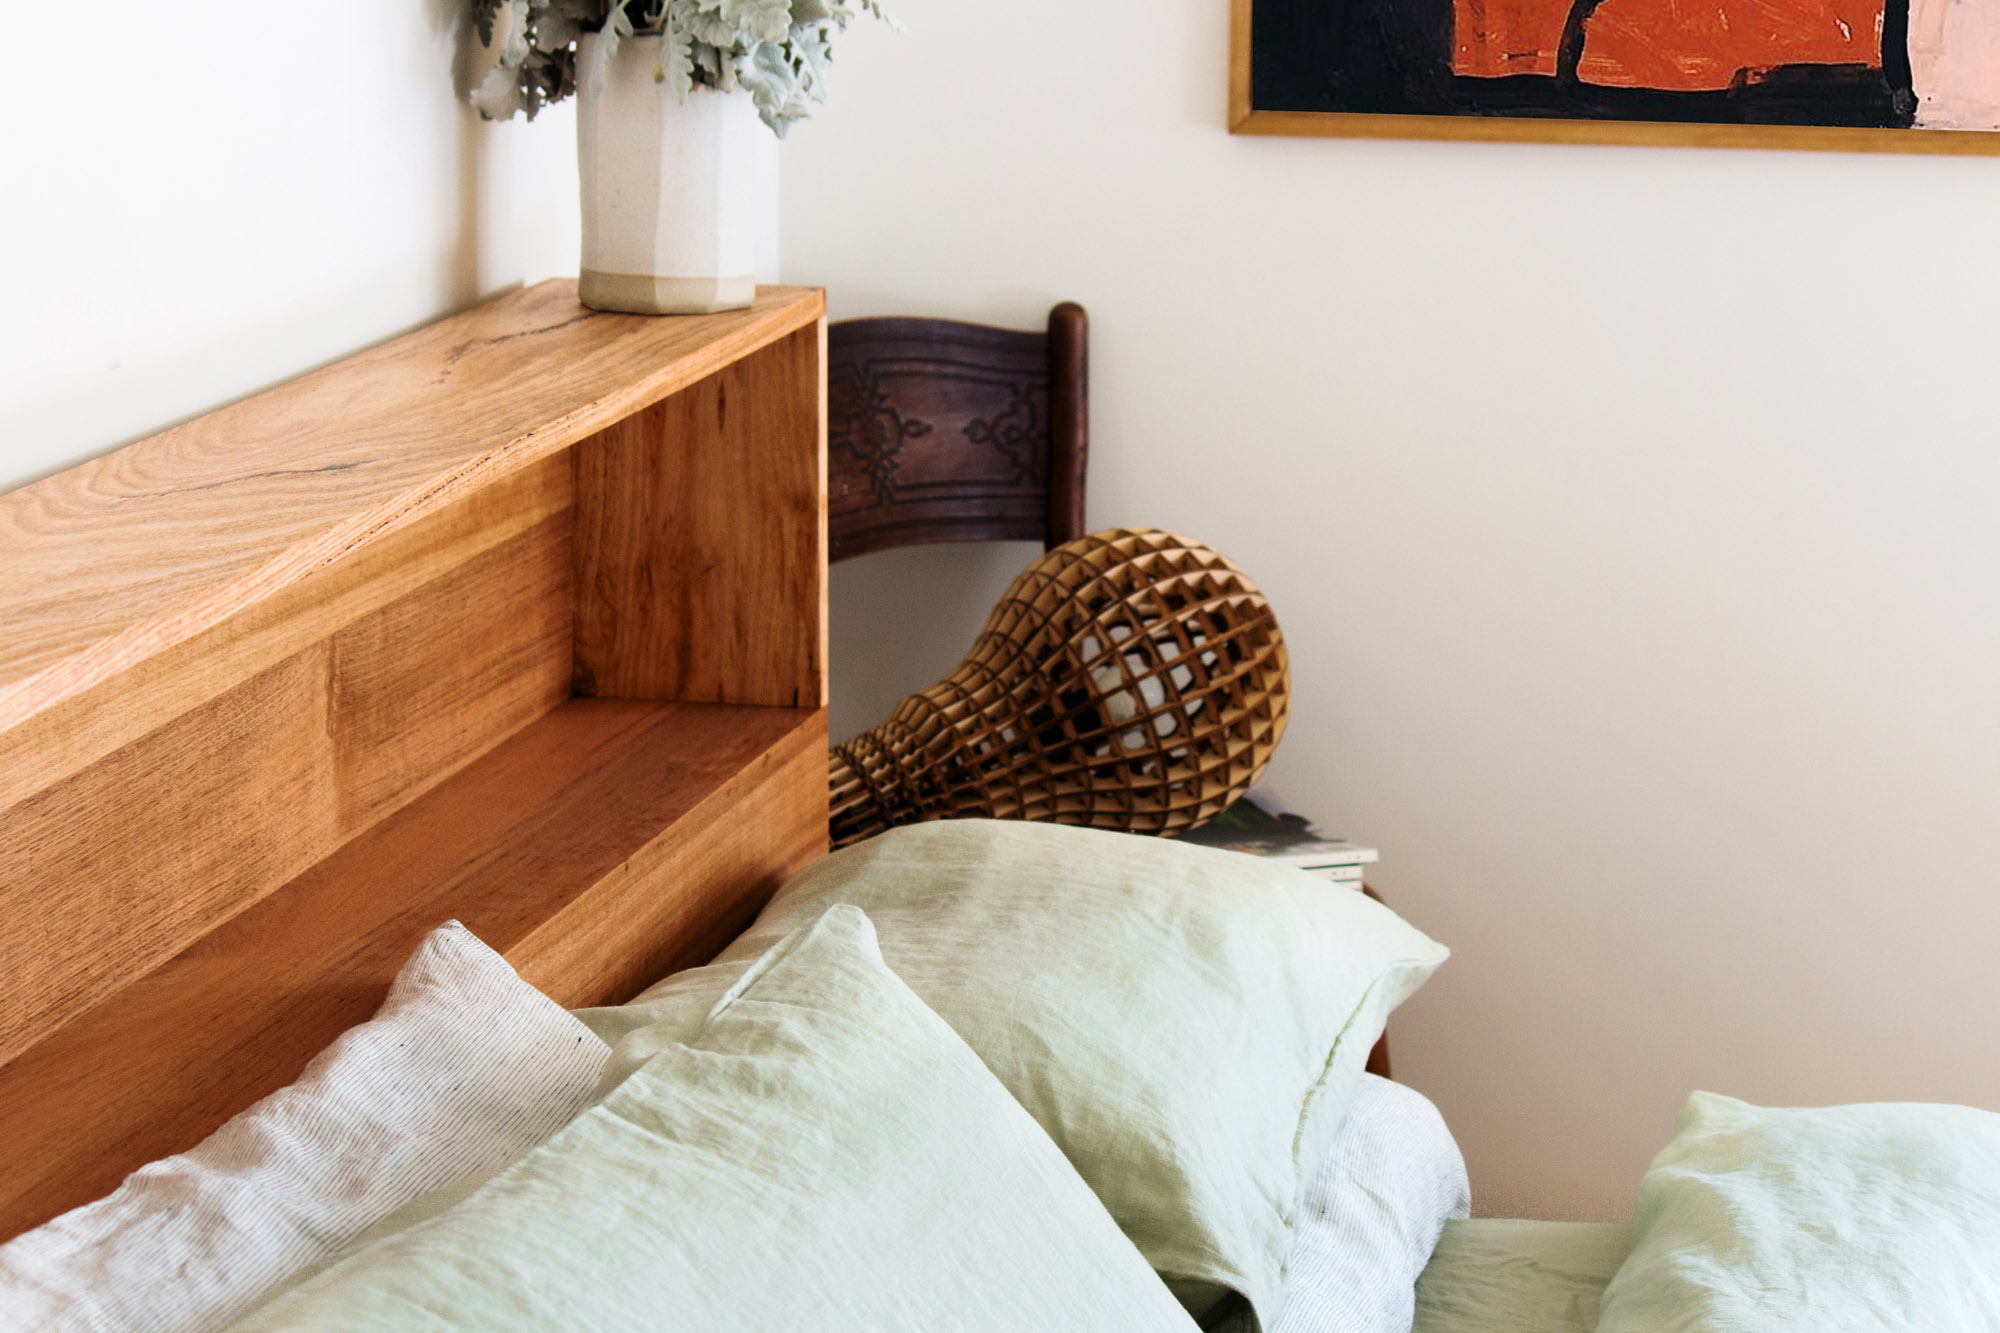 Al and Imo Handmade - Bookshelf Bedhead Platform Bed - Custom made from recycled timber - Australia - Melbourne - Surf Coast-24.jpg